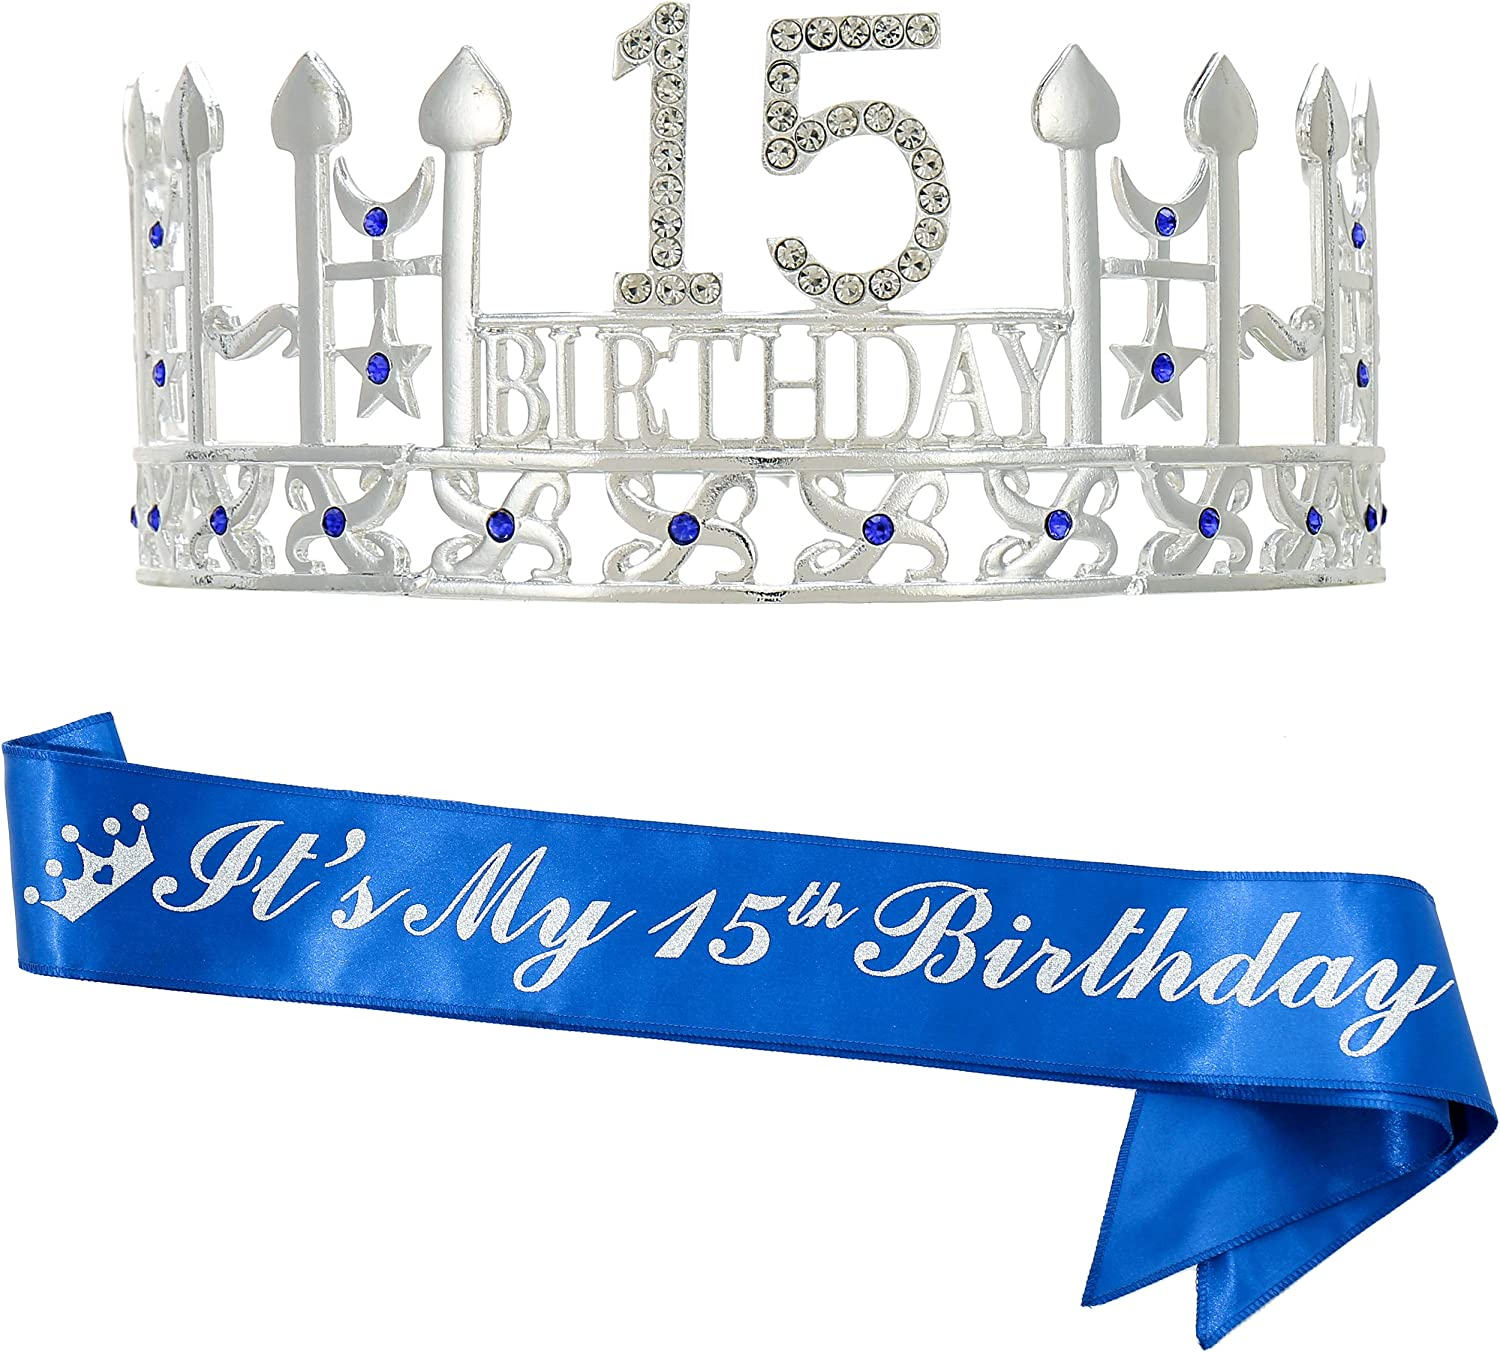 15th Birthday Gifts for BOY, Birthday Crown and